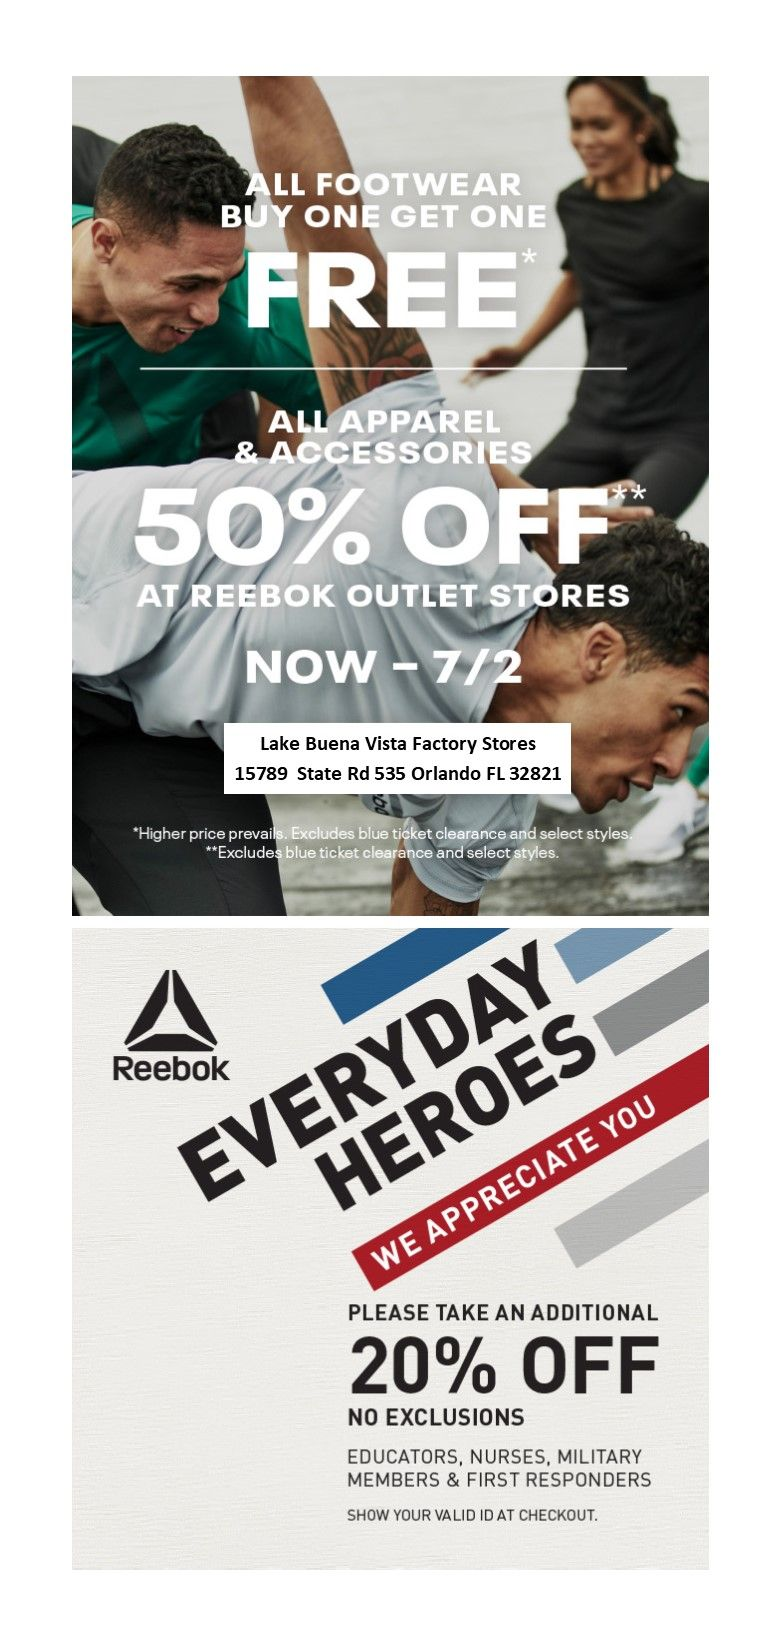 Diez años ángel Casa de la carretera  Reebok Outlet in store promotion! Valid now thru 7/2. All footwear buy one  get one free. All Apparel and accesories … | Shop for less, Easy spirit,  Discount fashion